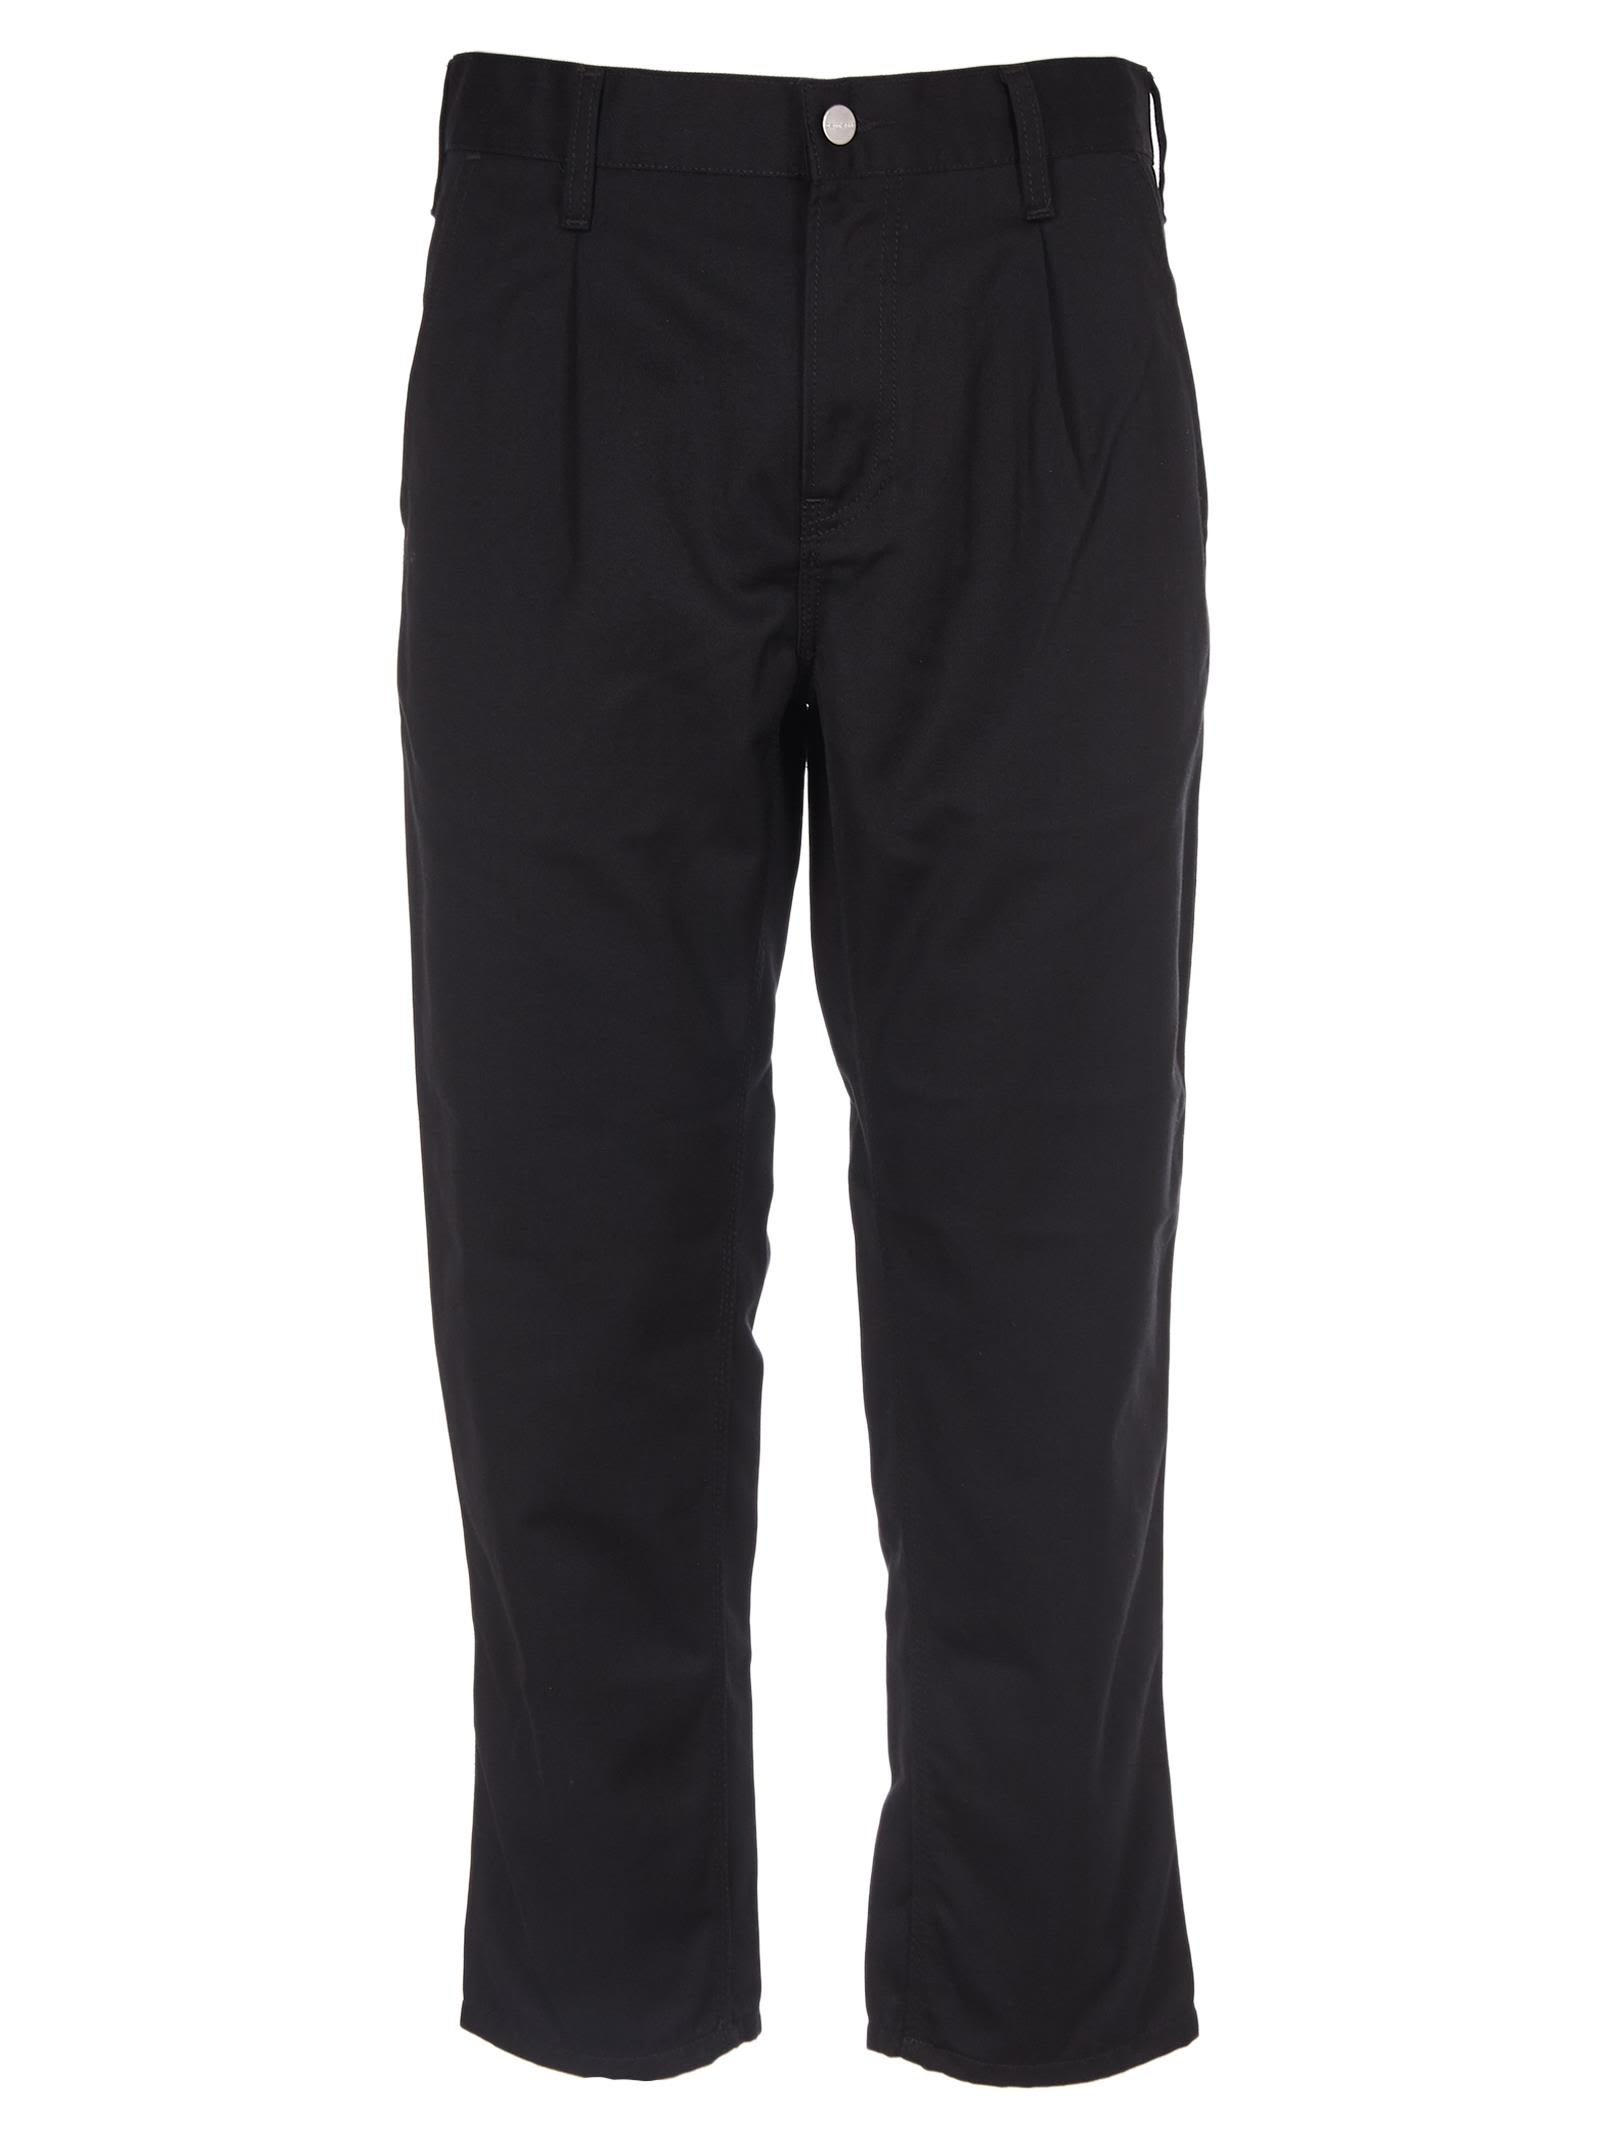 Carhartt Abbott Trousers